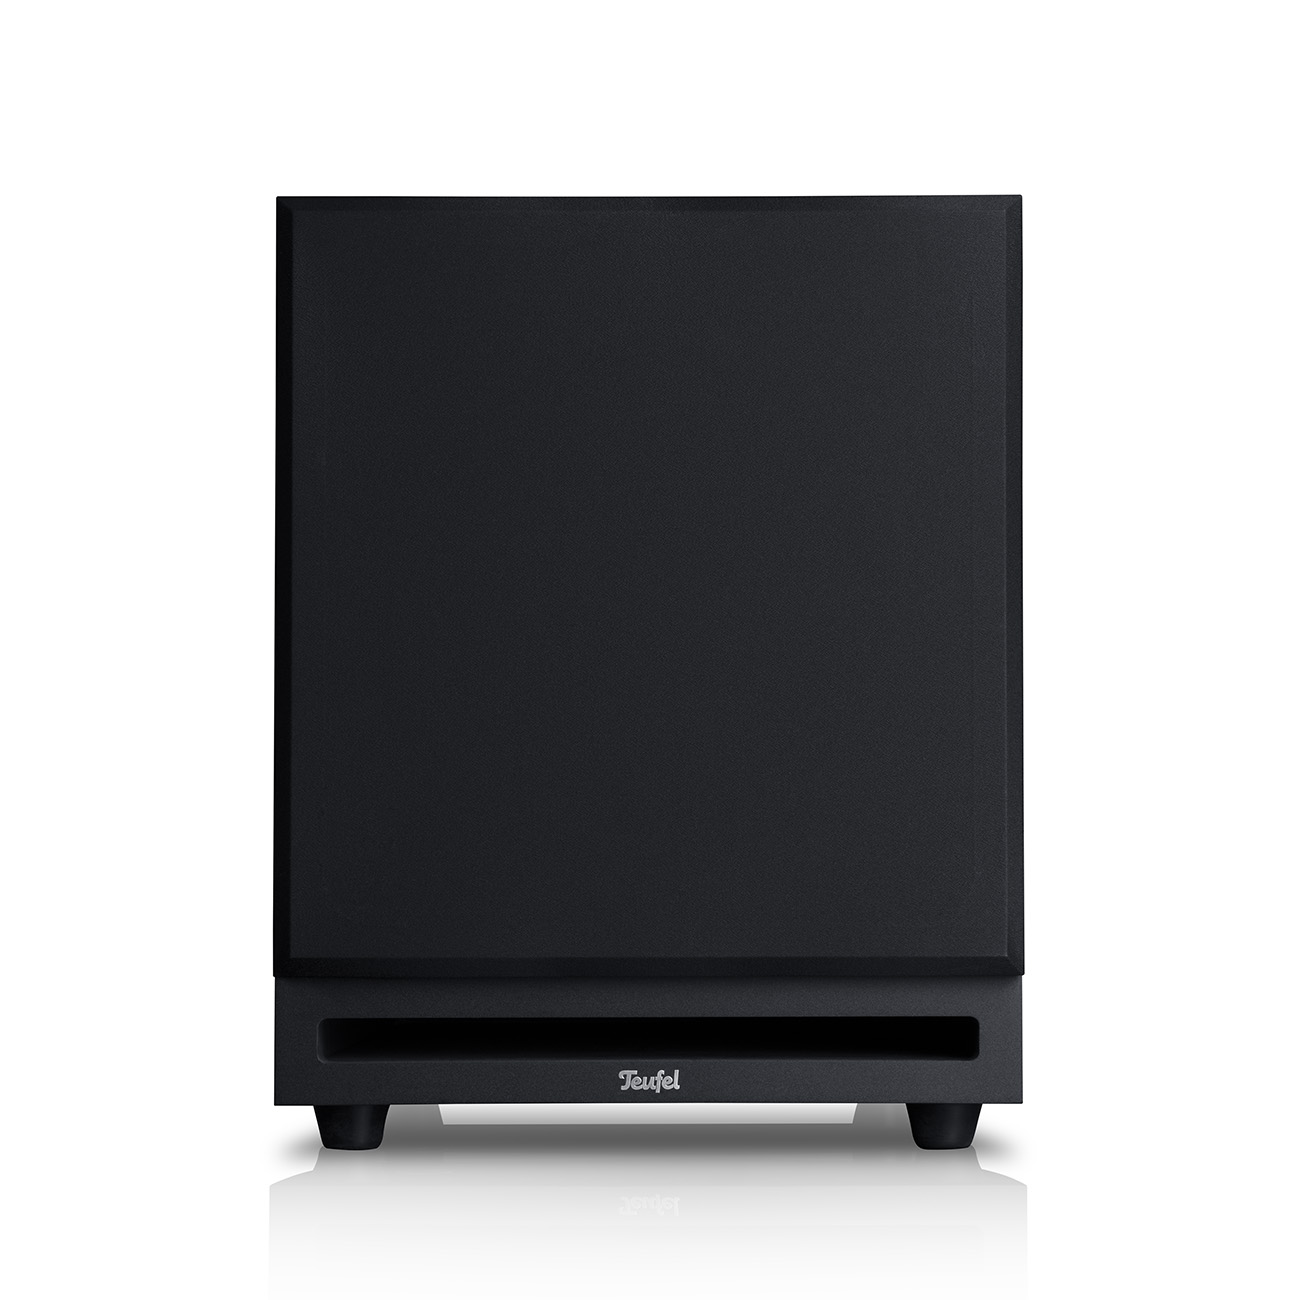 system-6-thx-select-sub-front-straight-black-cover-1300x1300x72.jpg